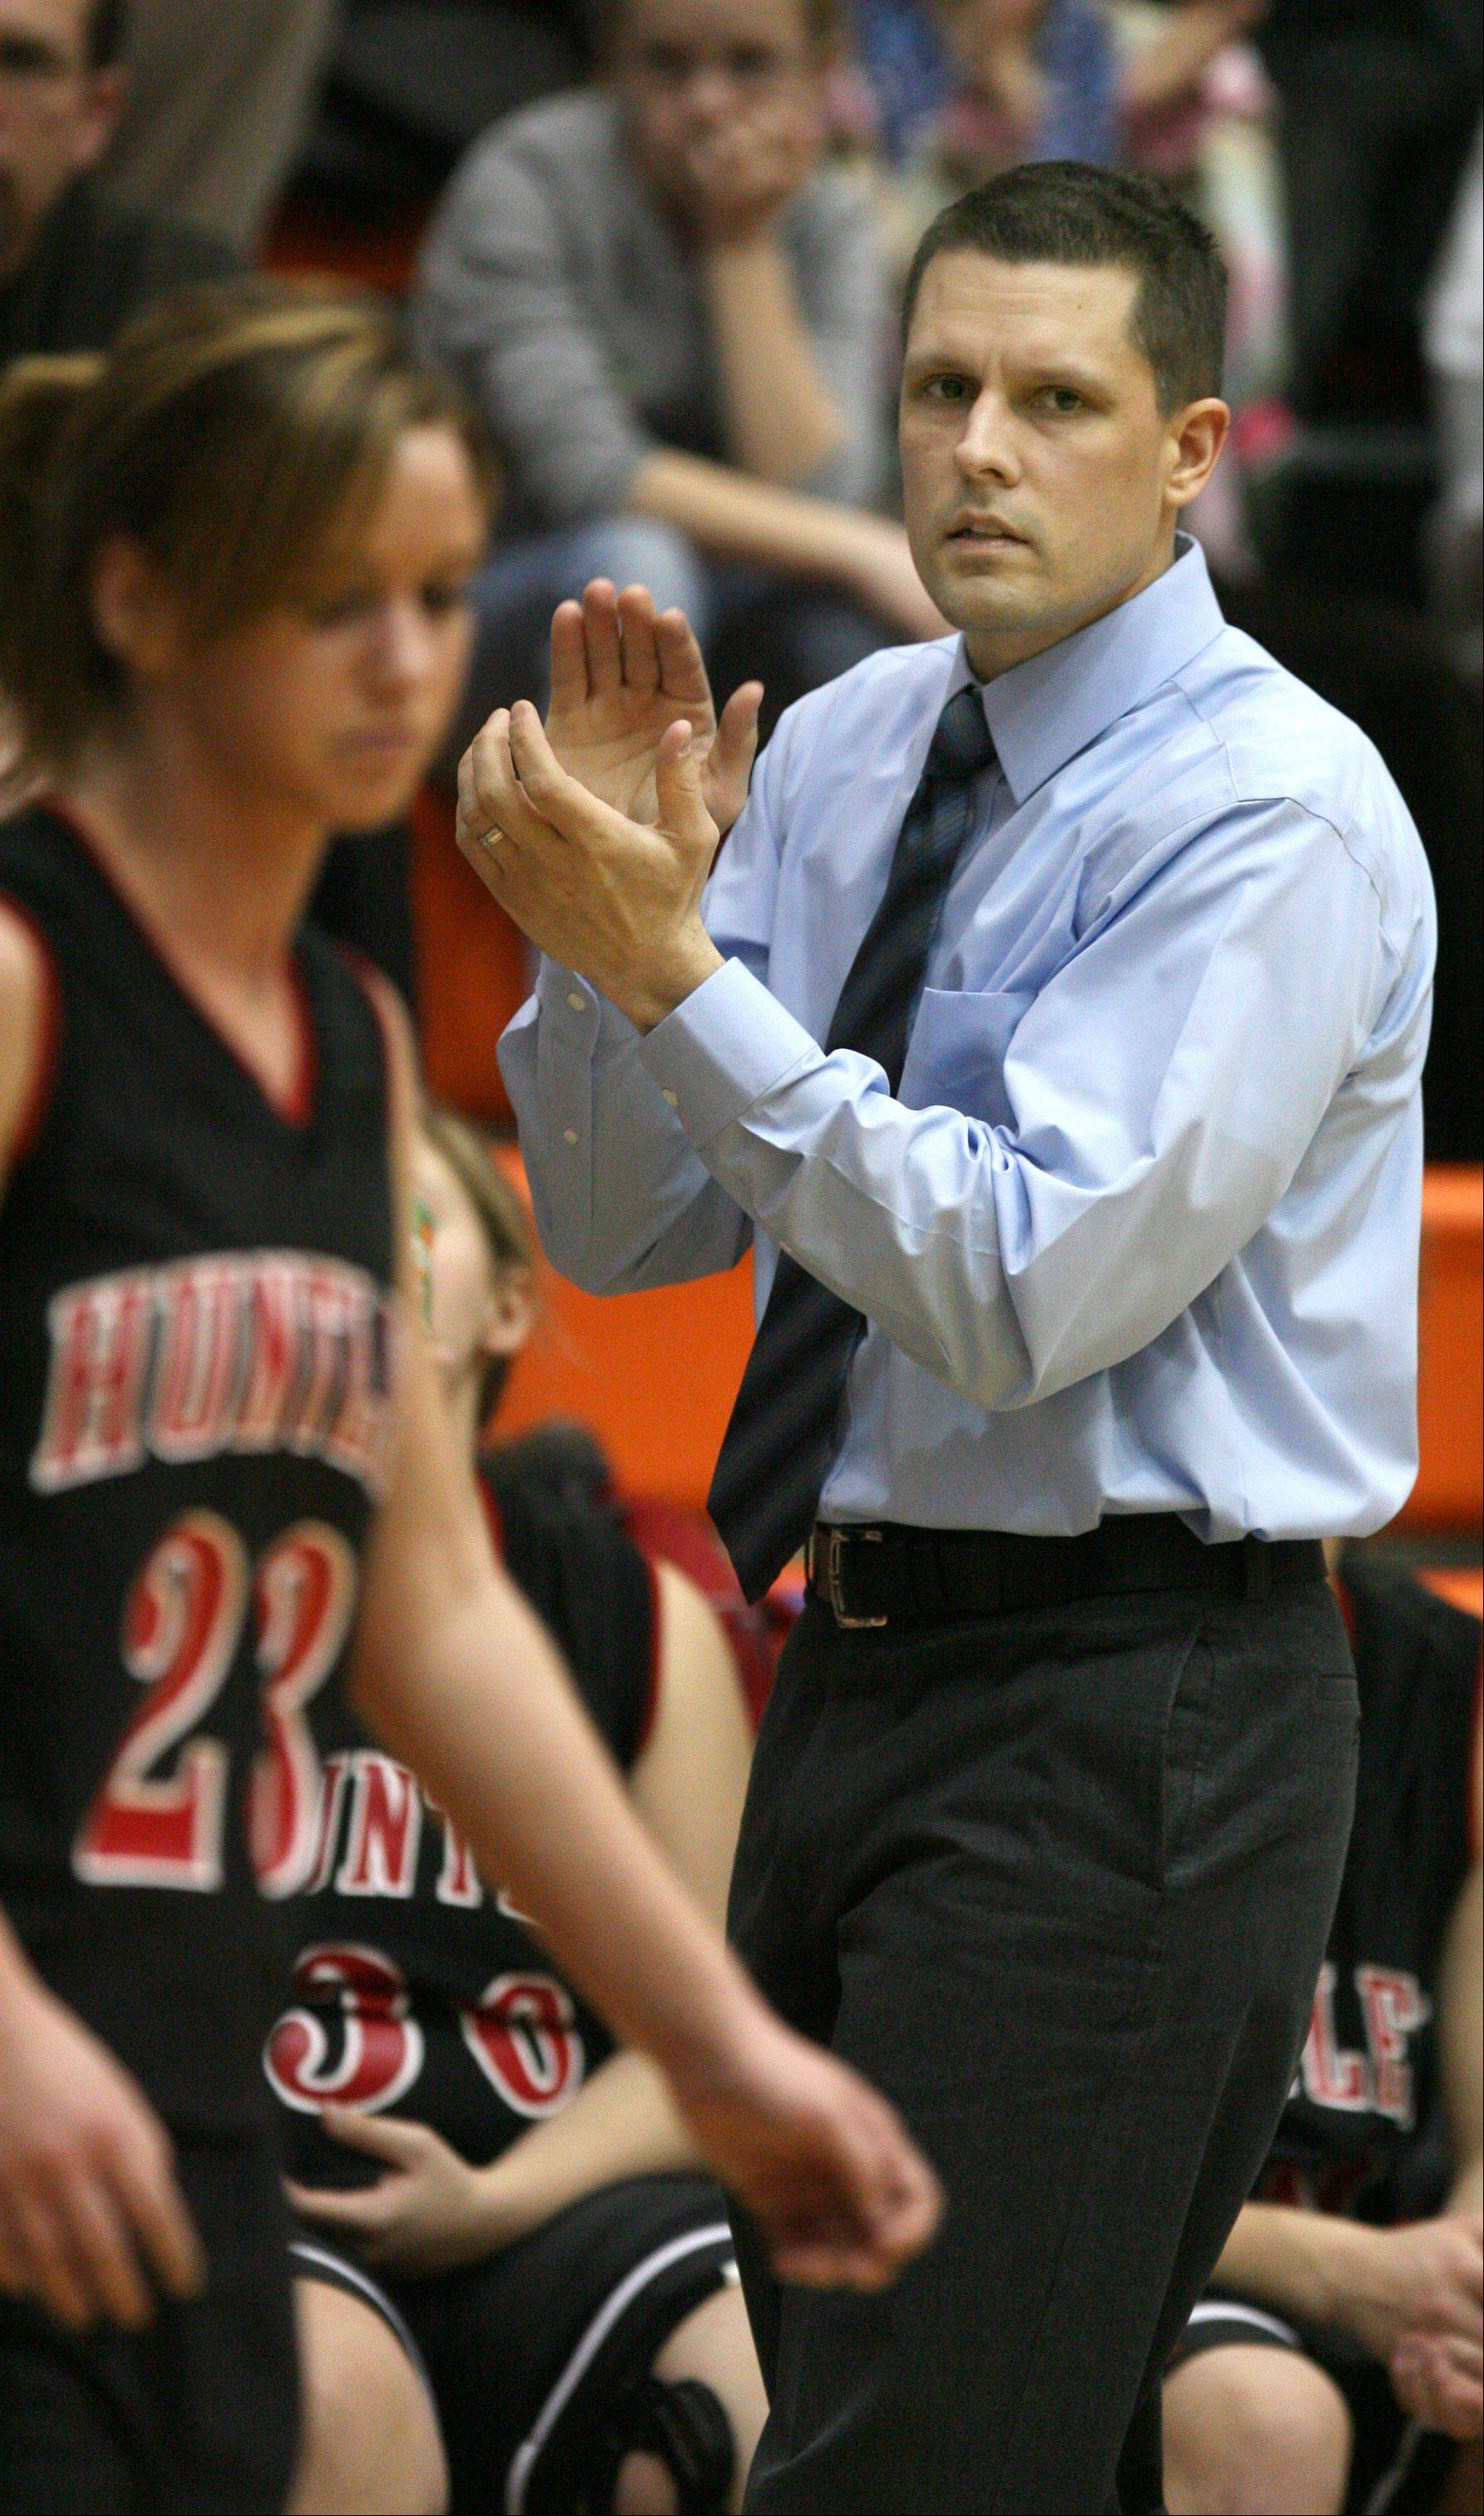 DANIEL WHITE/dwhite@dailyherald.comHuntley coach Steve Raethz encourages his players against Hoffman Estates during the 2007 season.